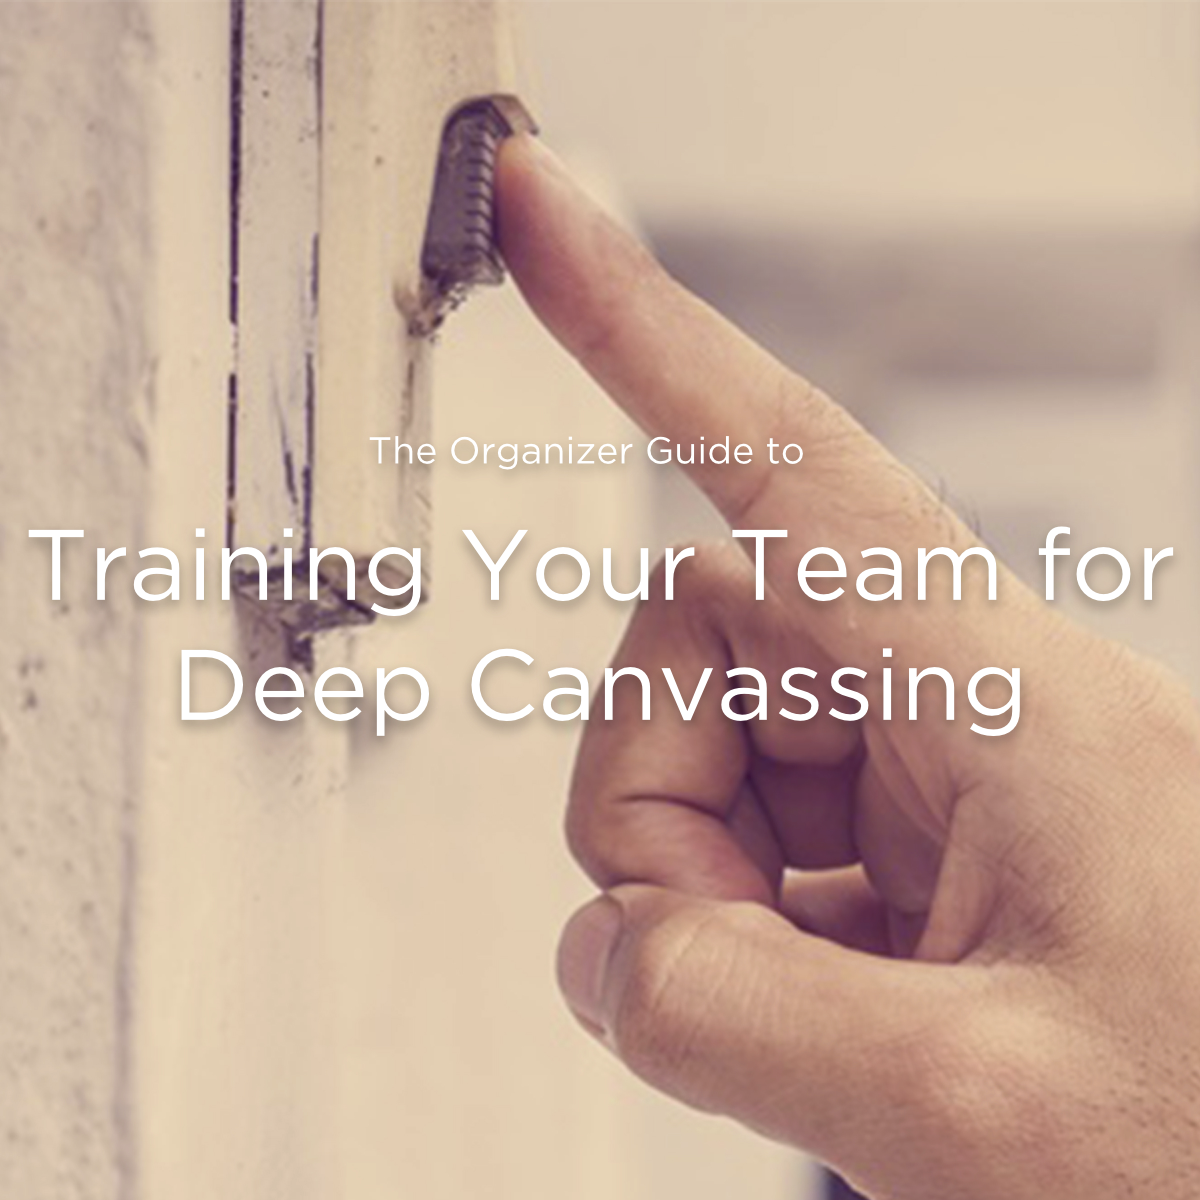 Deep Canvassing Guide